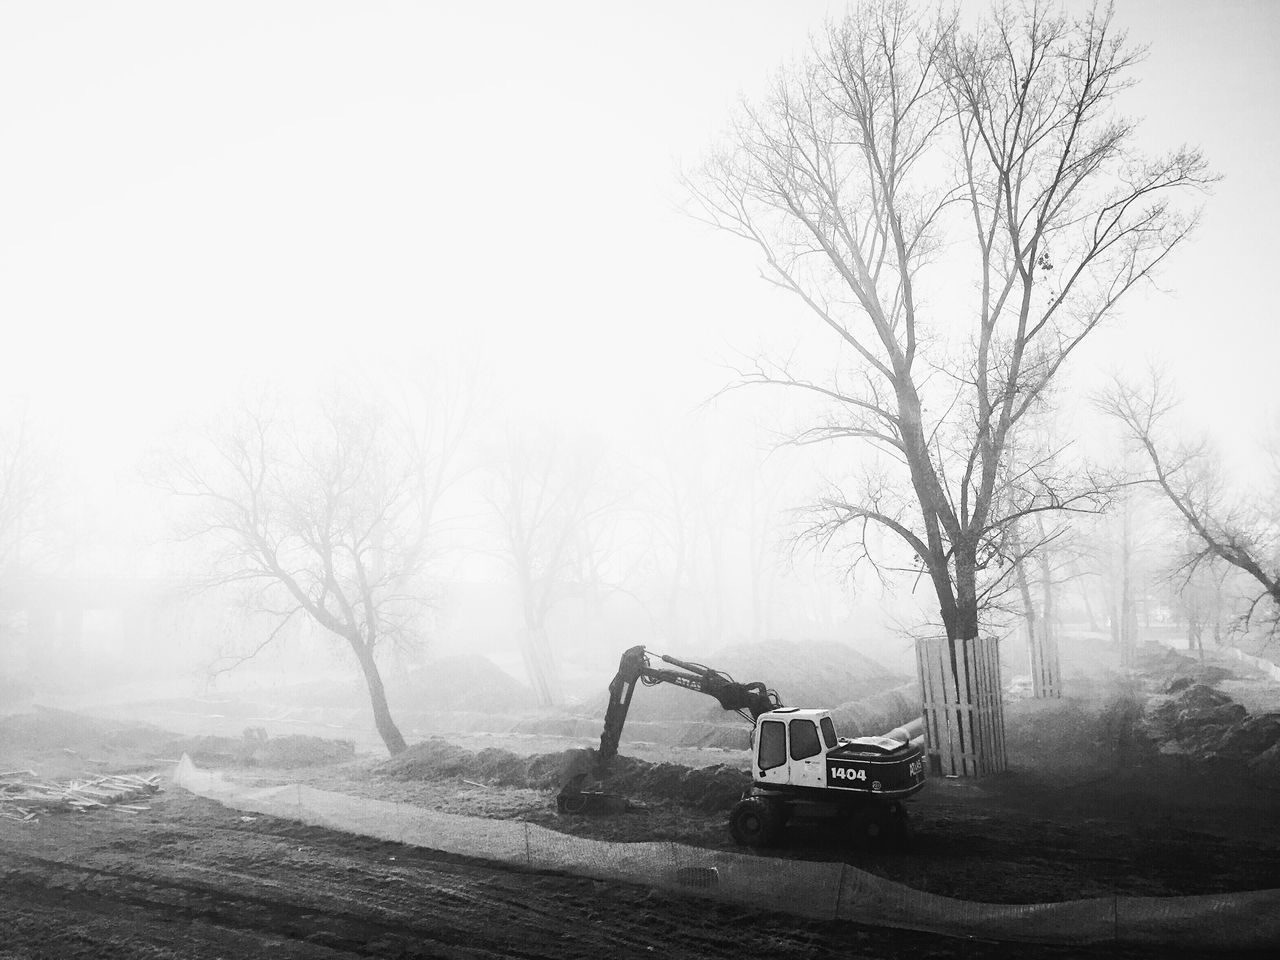 Renovations near Bundek Park, Zagreb, Croatia, 2016. Renovations Construction Bundek Park Zagreb Croatia Fog Morning Mist Early Morning Trees Foggy Quiet Serenity Calm Land Vehicle Construction Machinery Machine Adapted To The City